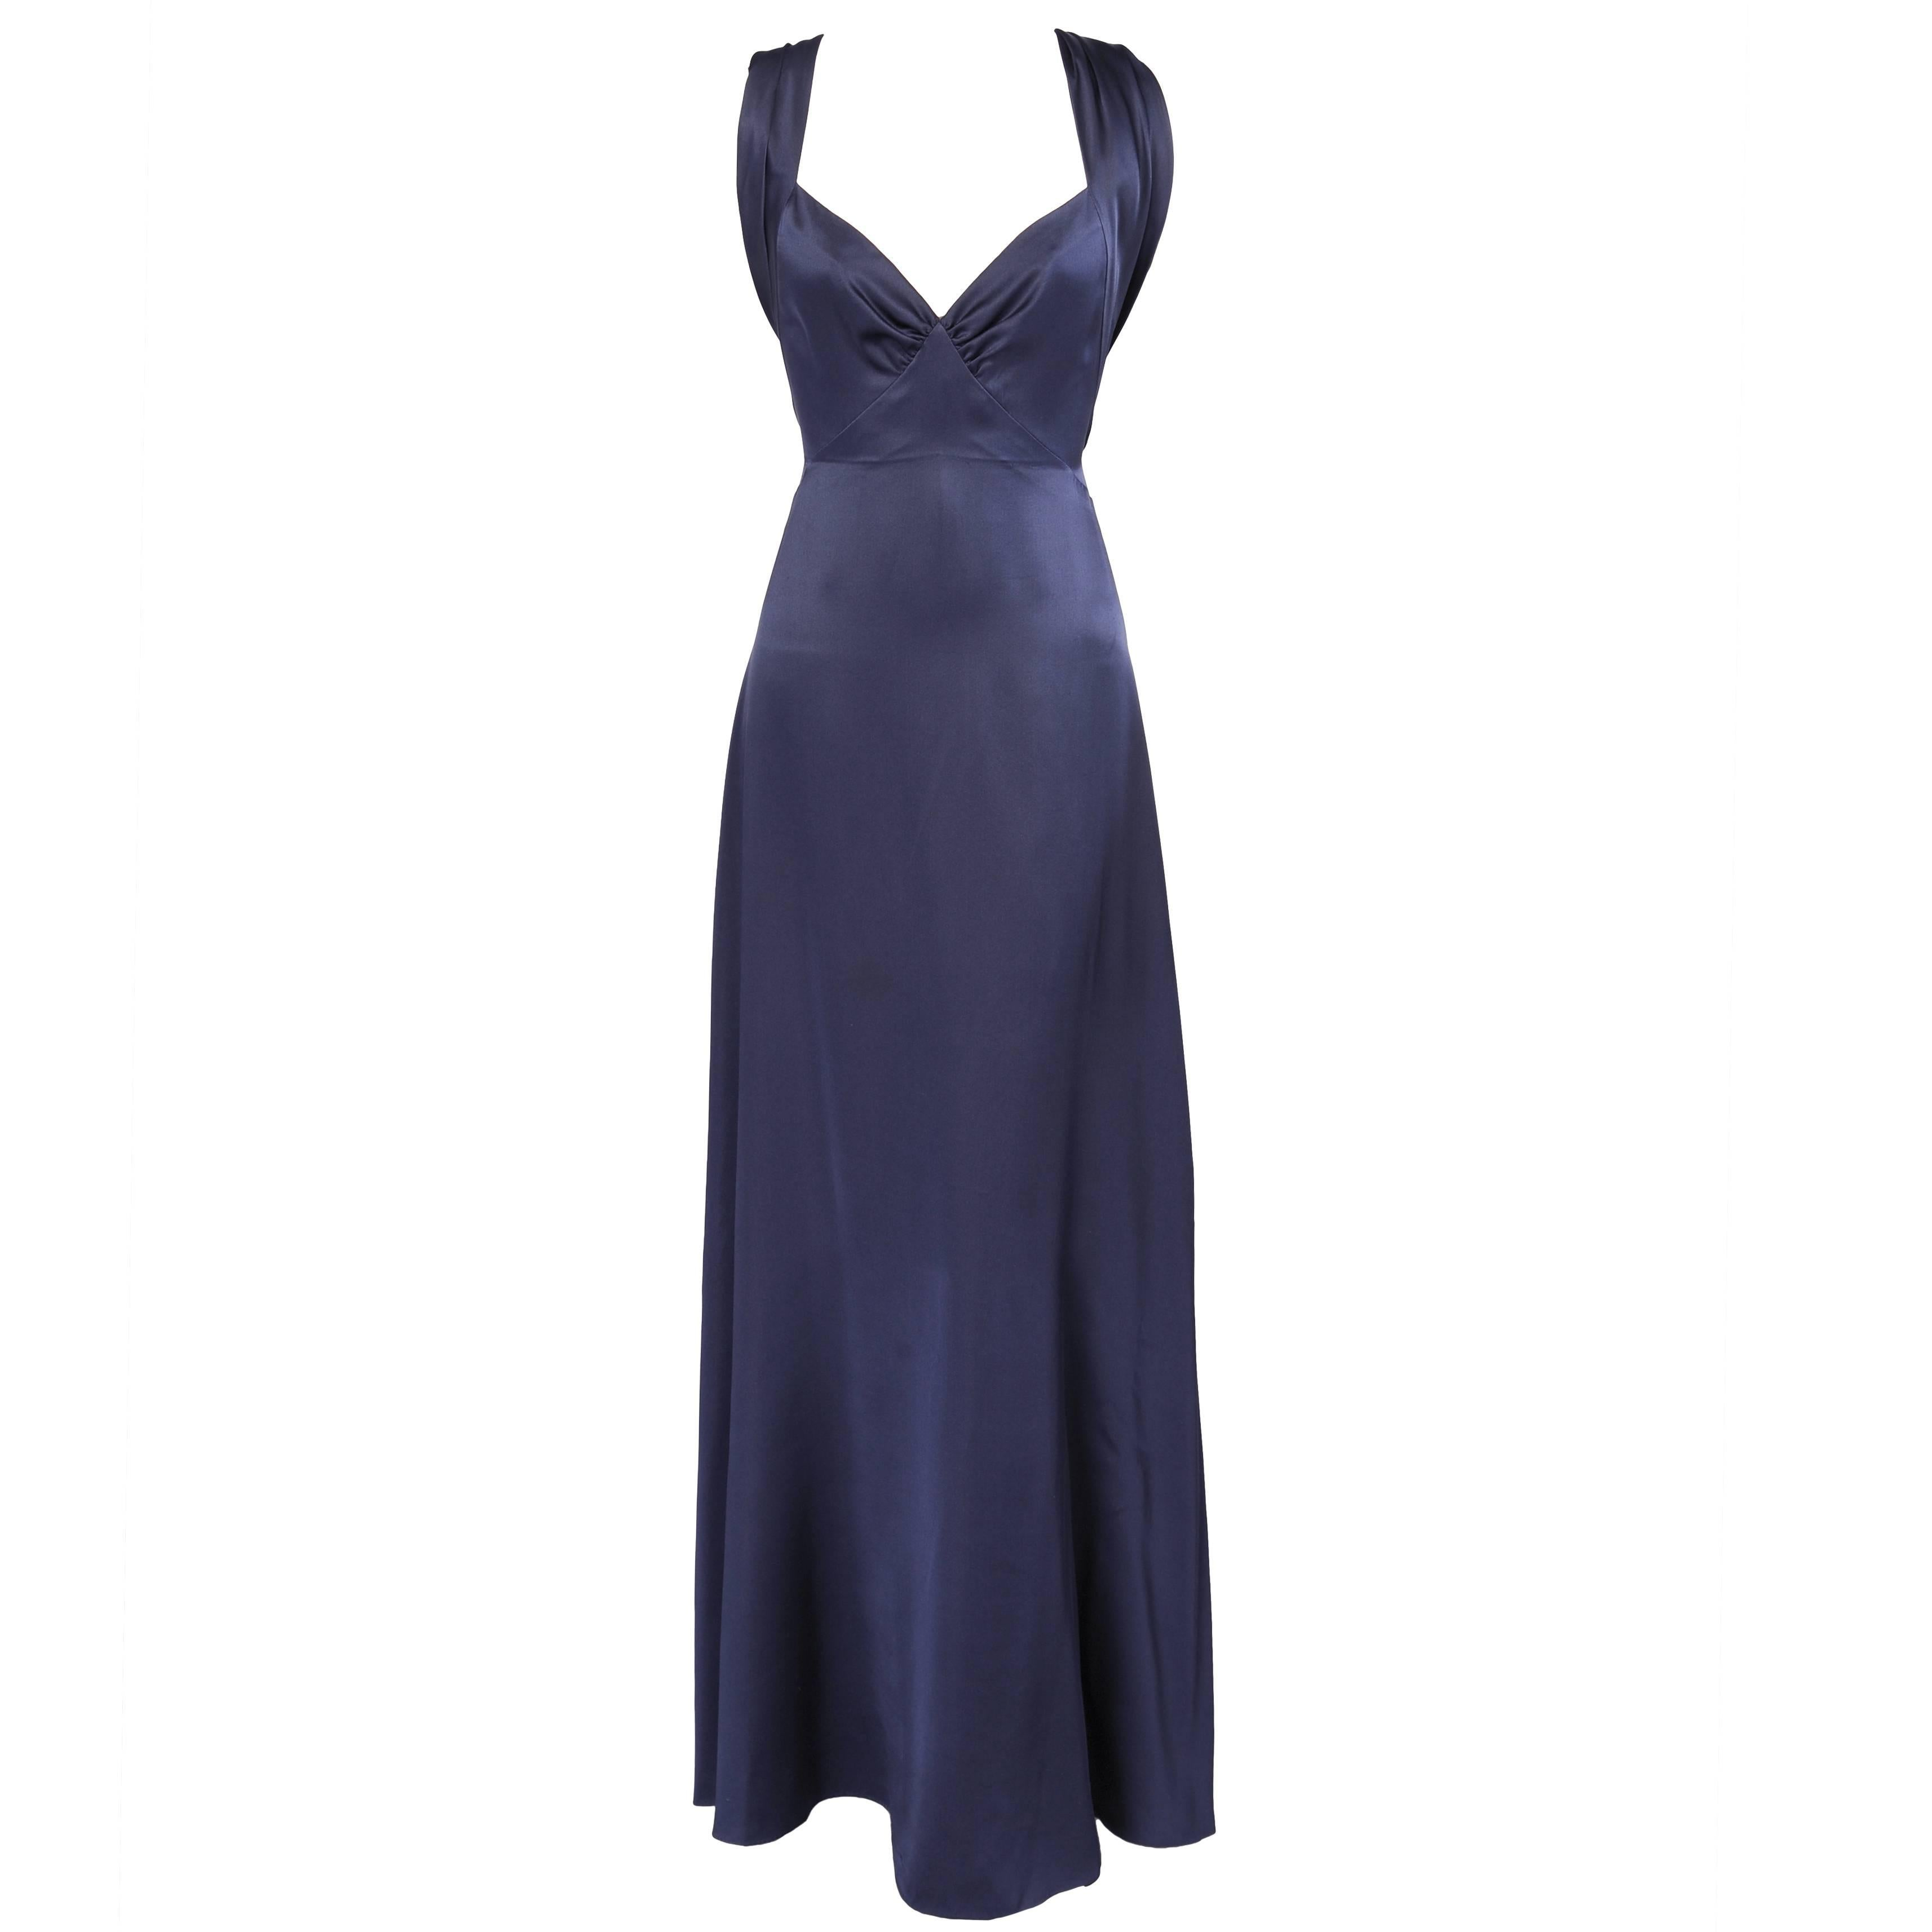 0ad1304f2ed3 Yves Saint Laurent Numbered Haute Couture Sapphire Blue Low Back Evening  Gown at 1stdibs